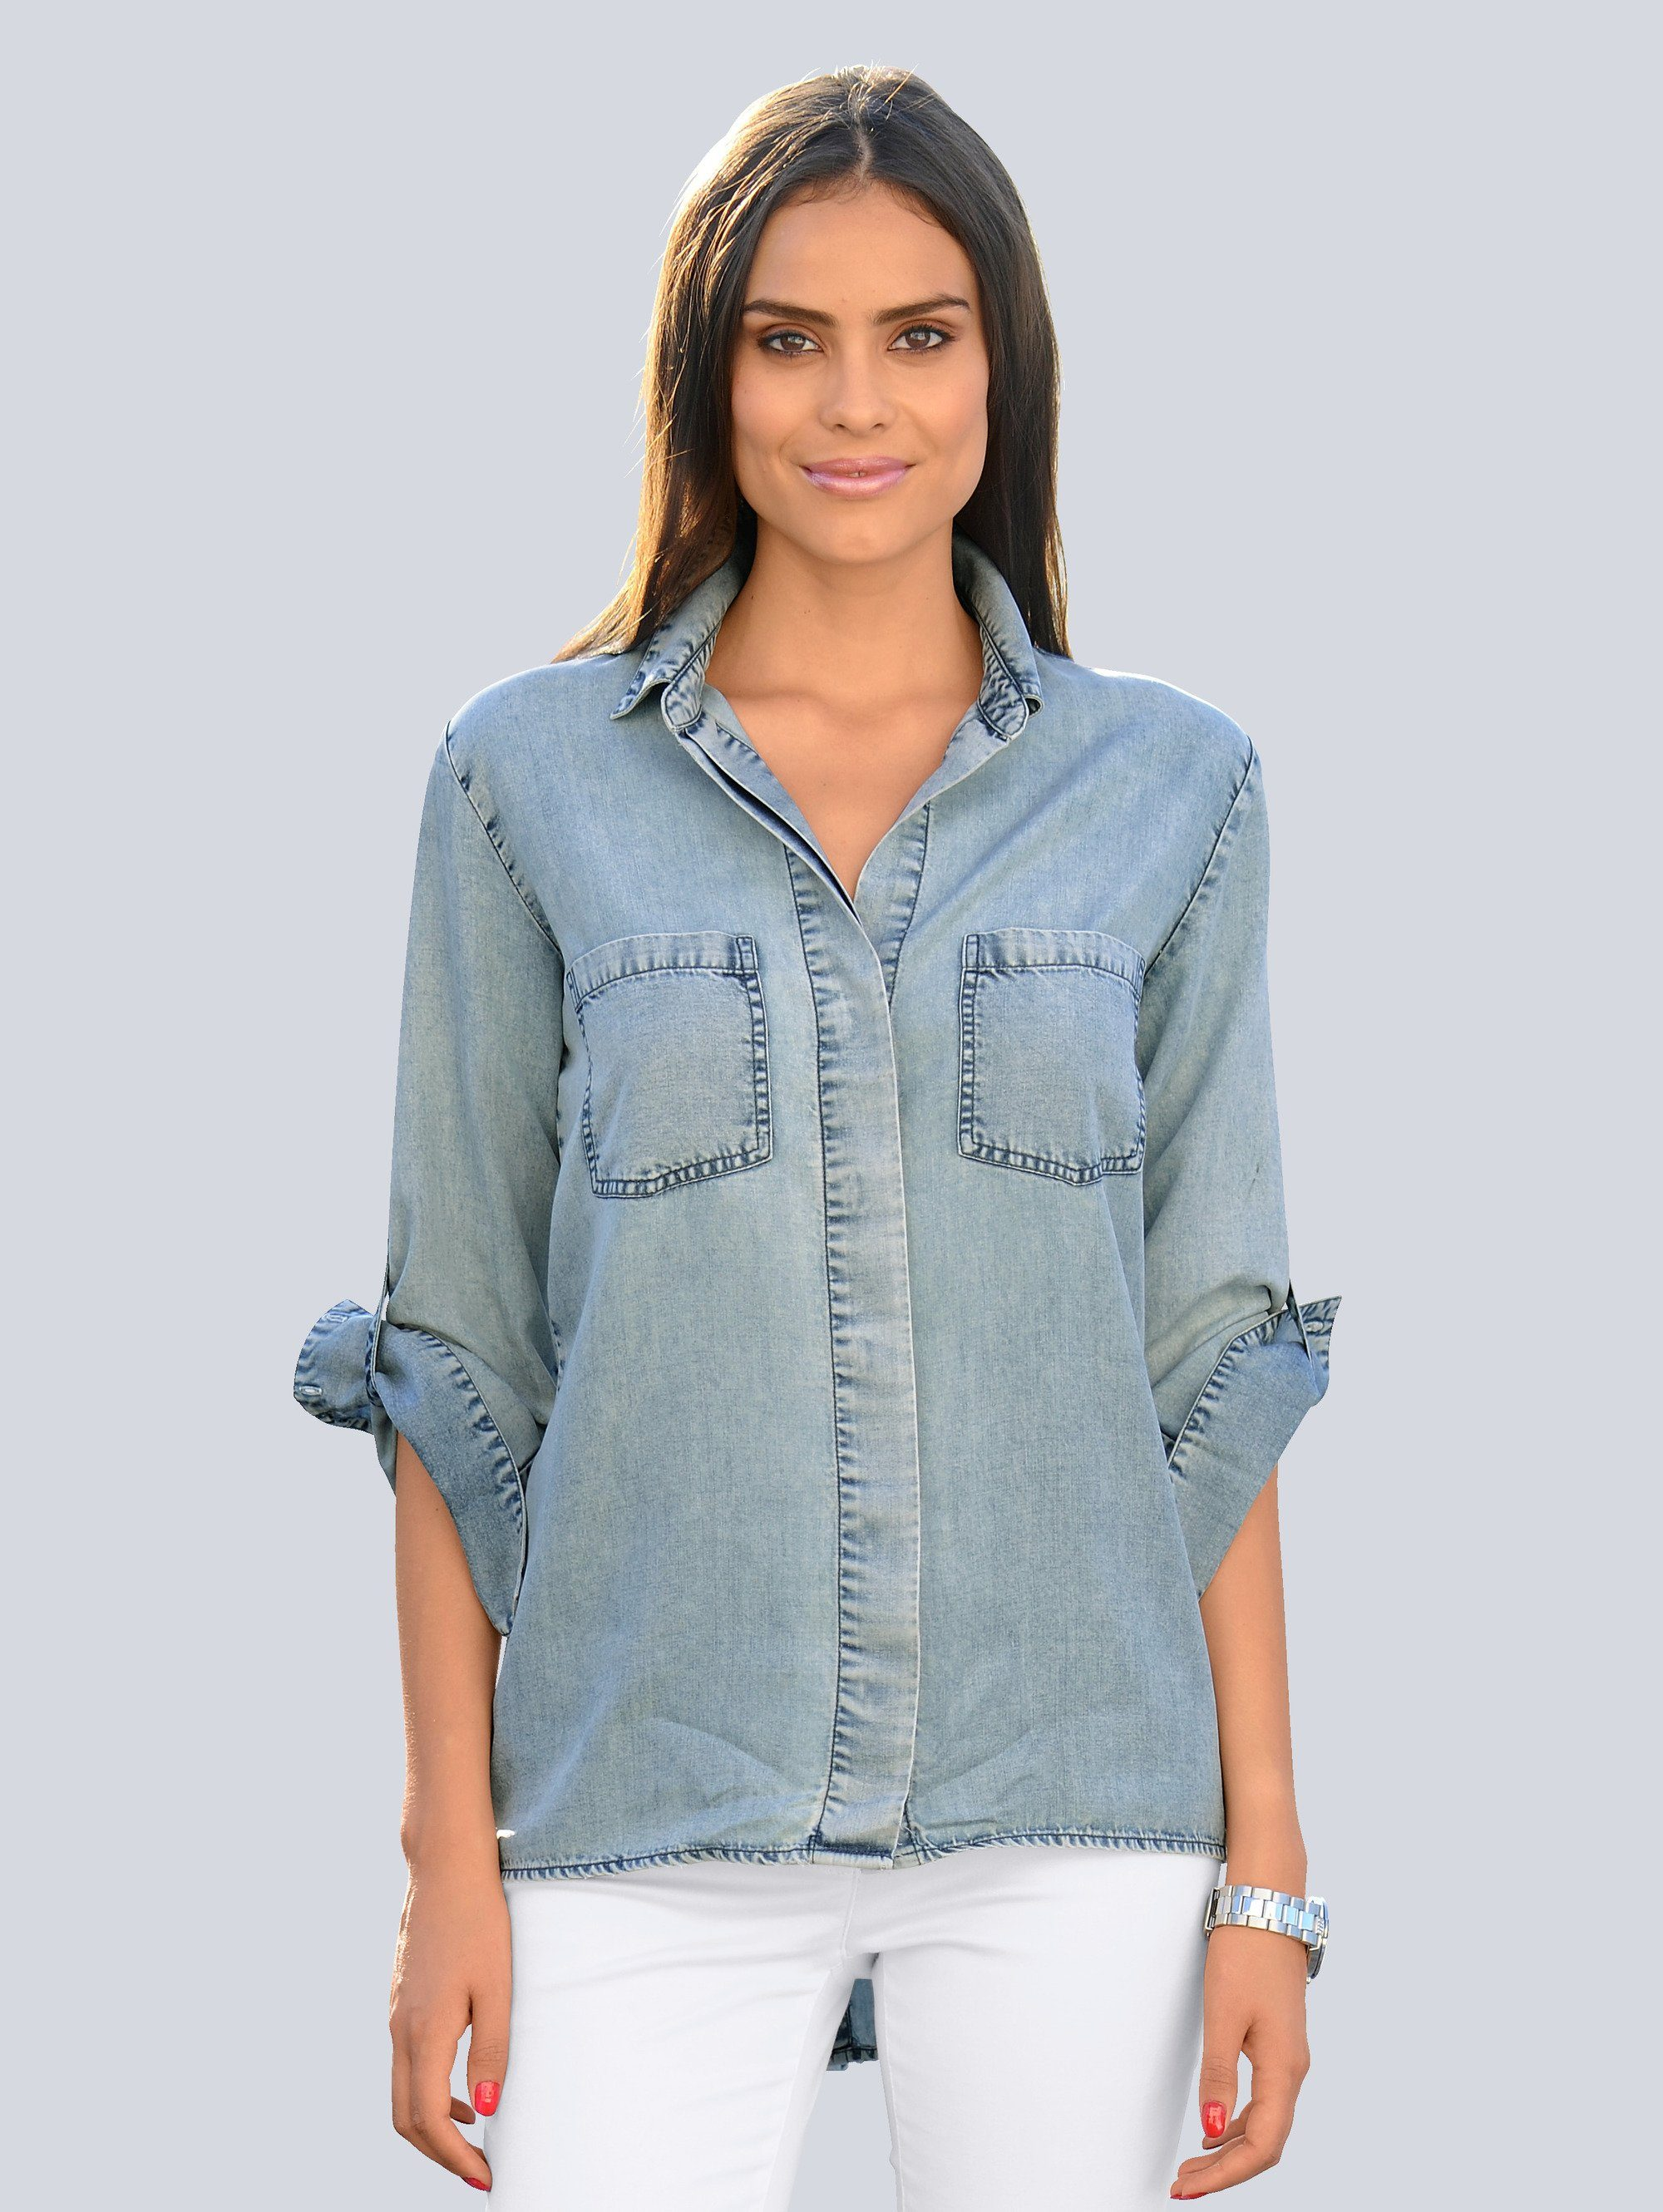 Alba Moda Bluse in Denim-Optik